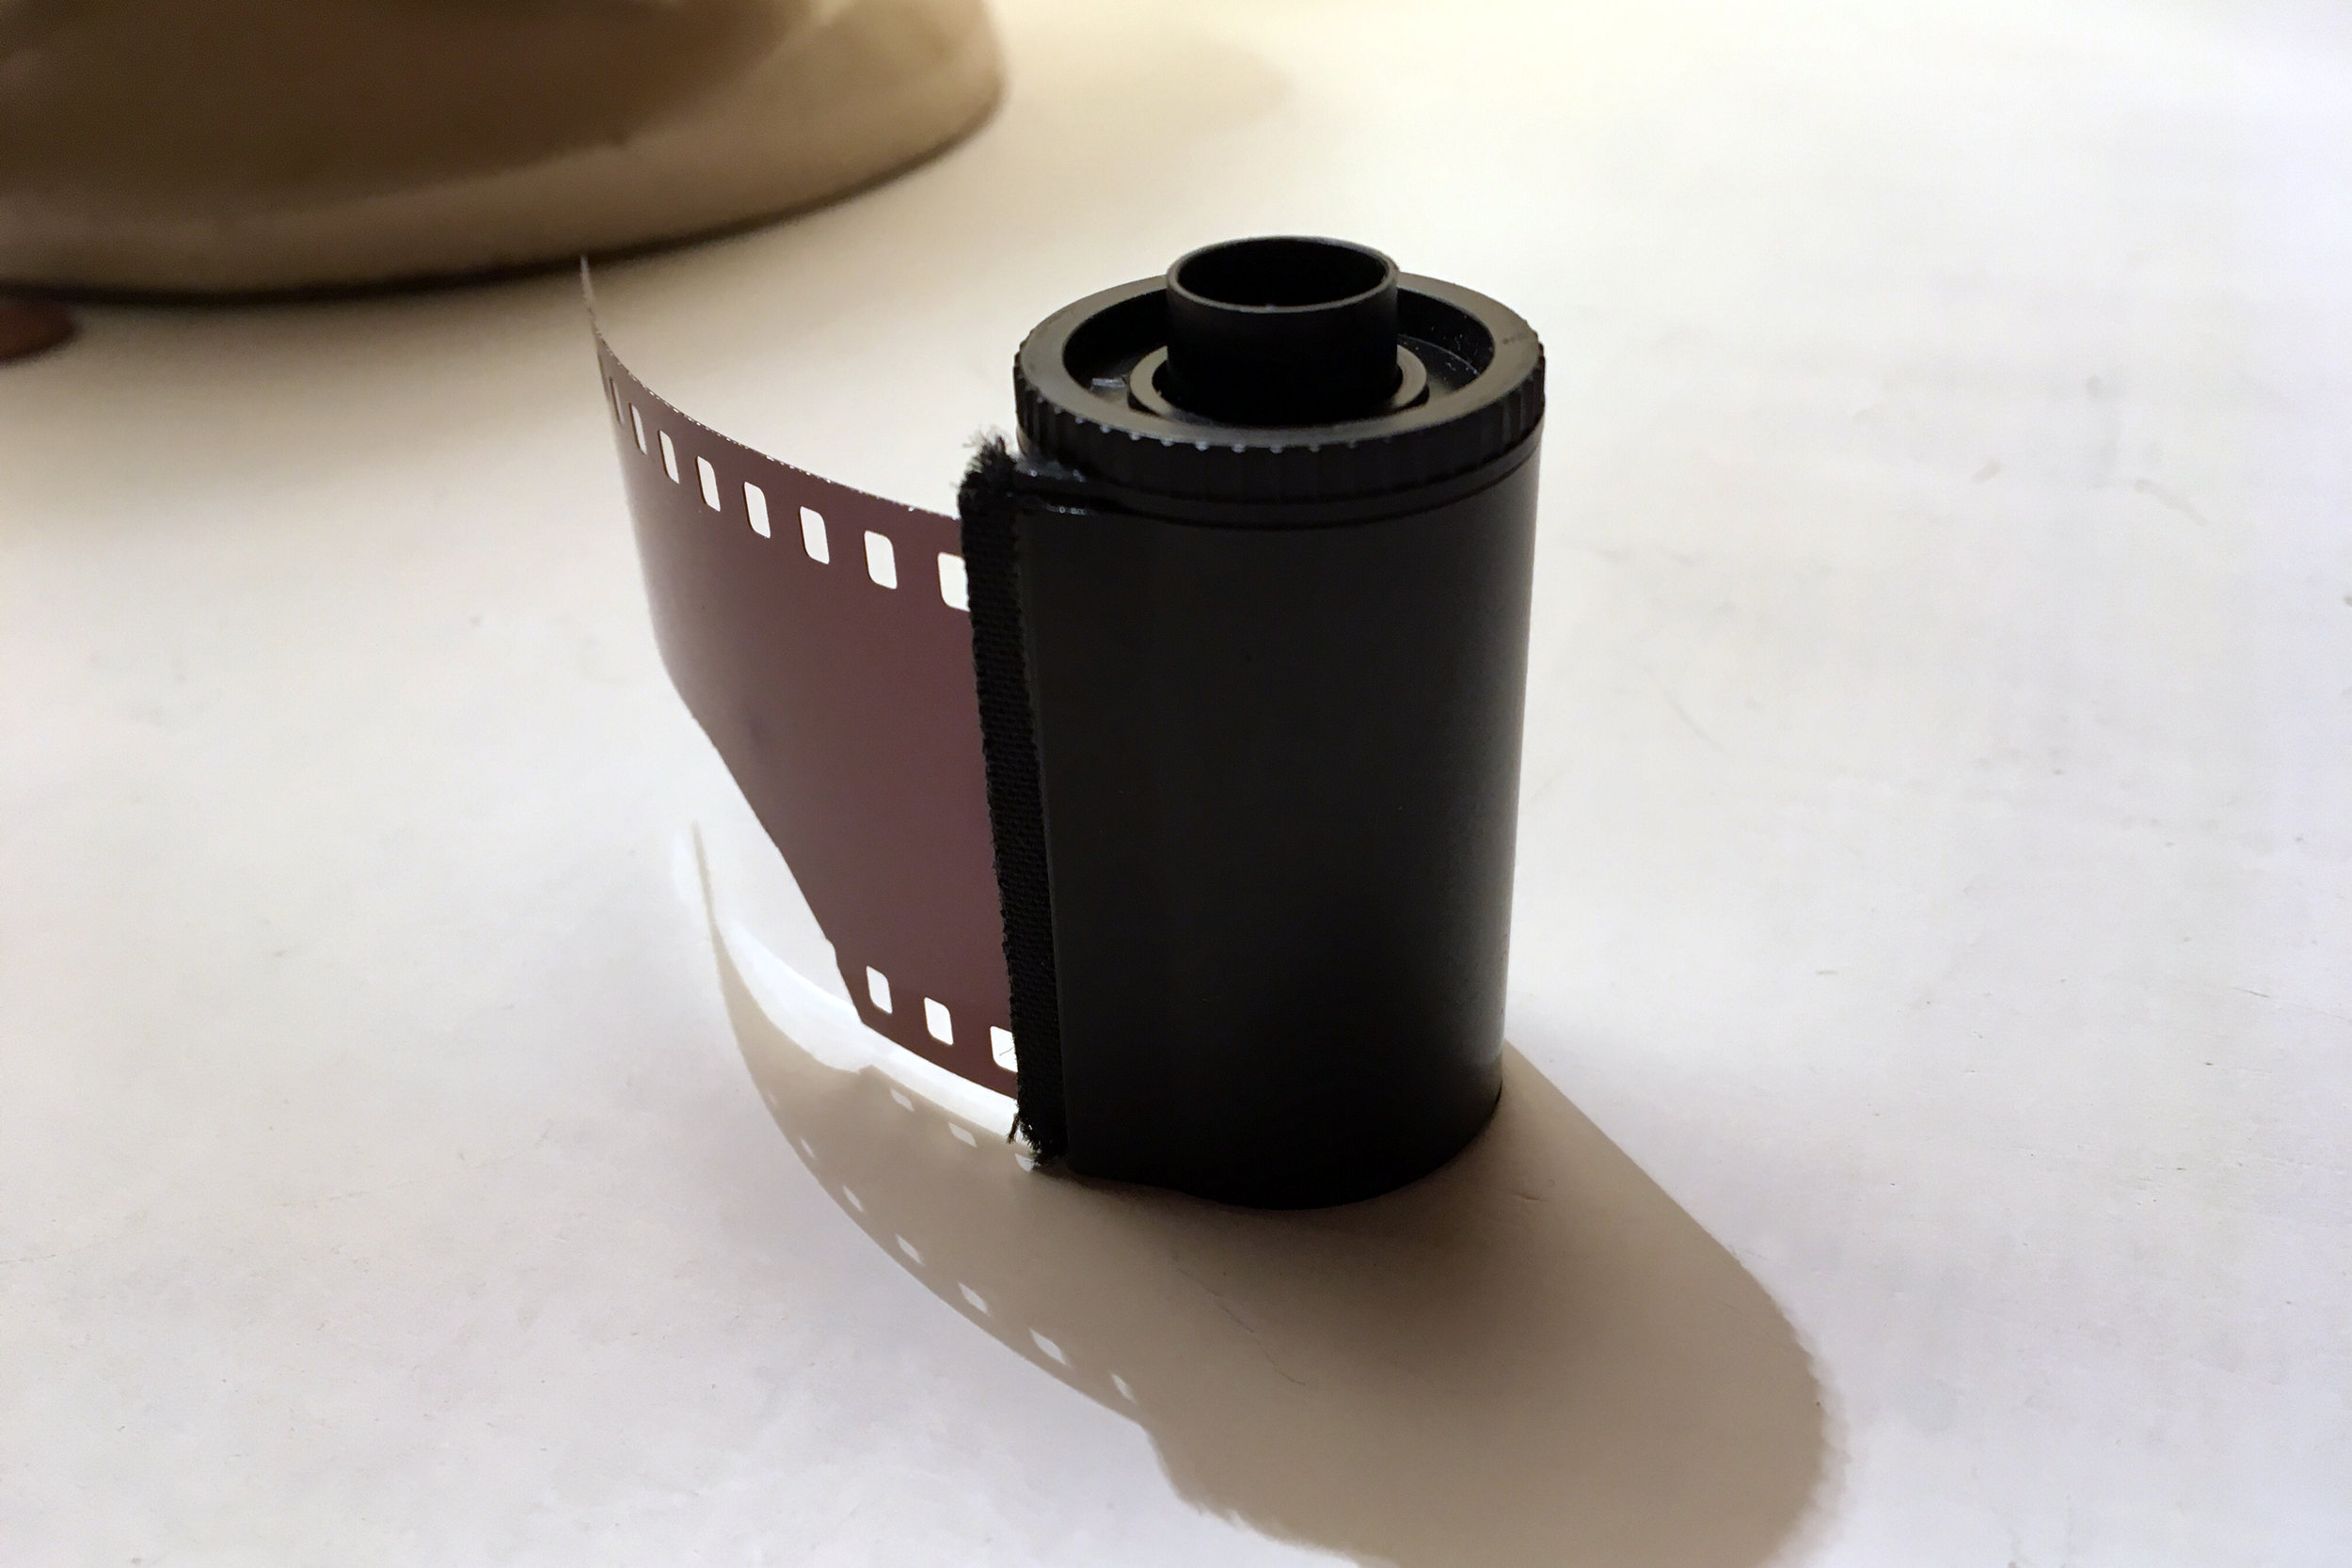 This is the first roll of photographic film produced on the Precision Coater by FILM Ferrania. This 12 exposure roll was cut and hand-spooled from an unexposed section of the 17m test strip produced on Tuesday, December 6, 2016.